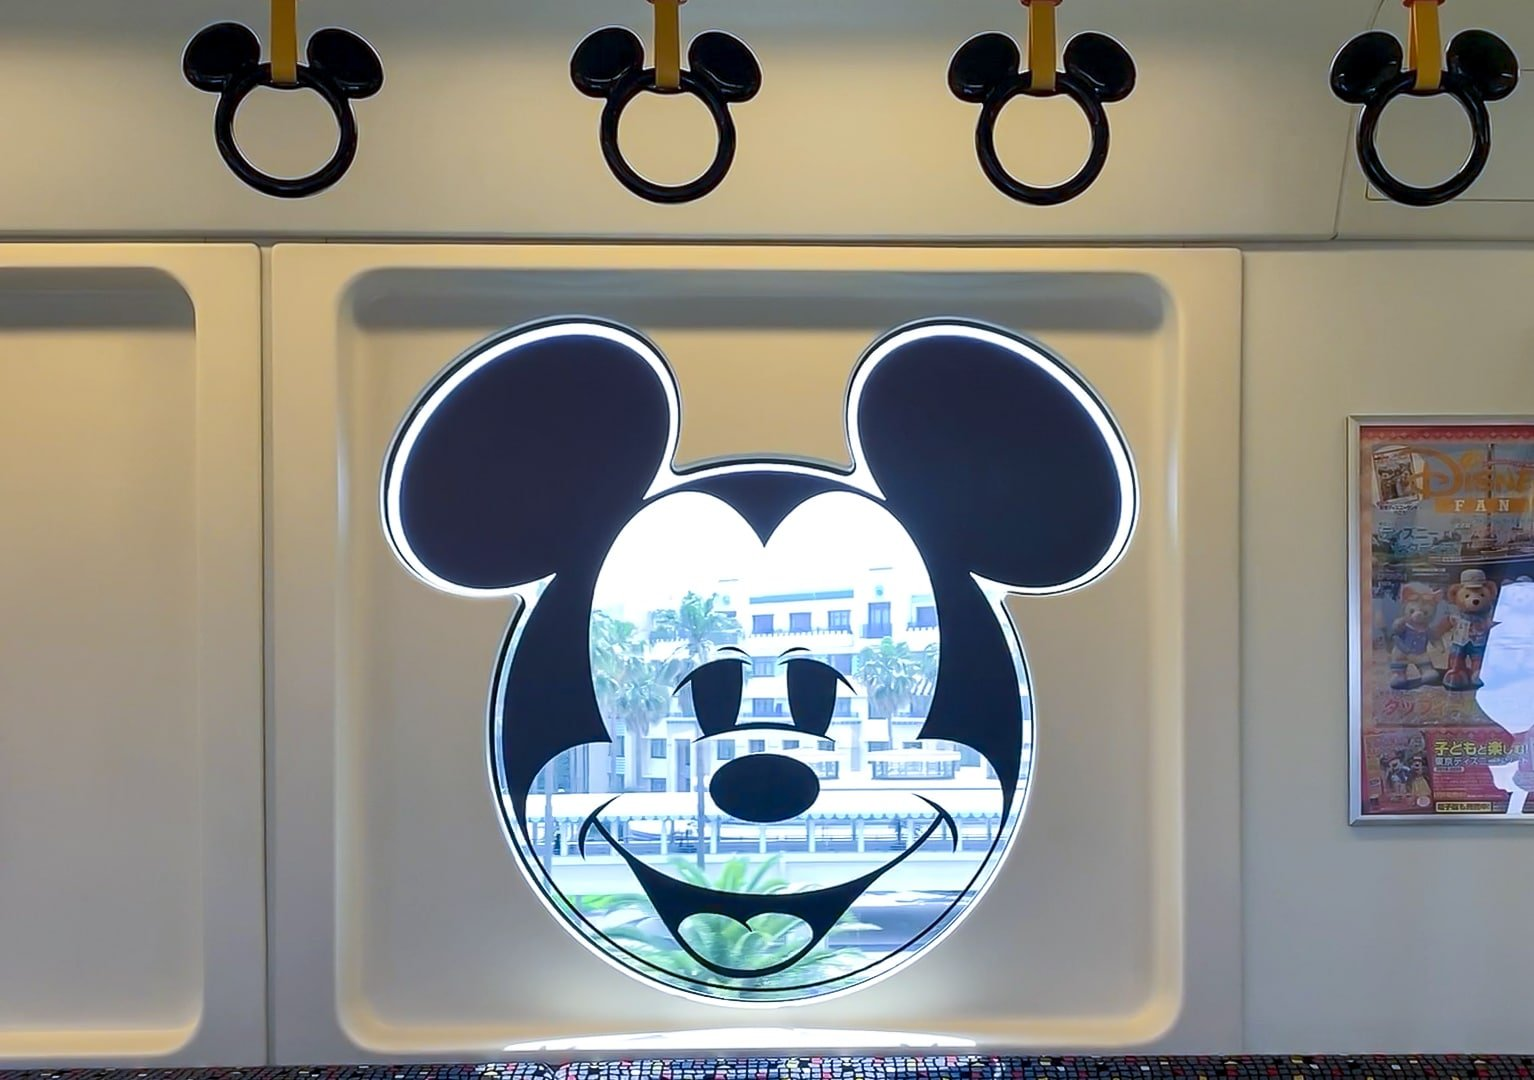 Micky Mouse windows and hand holders in the monorail train.